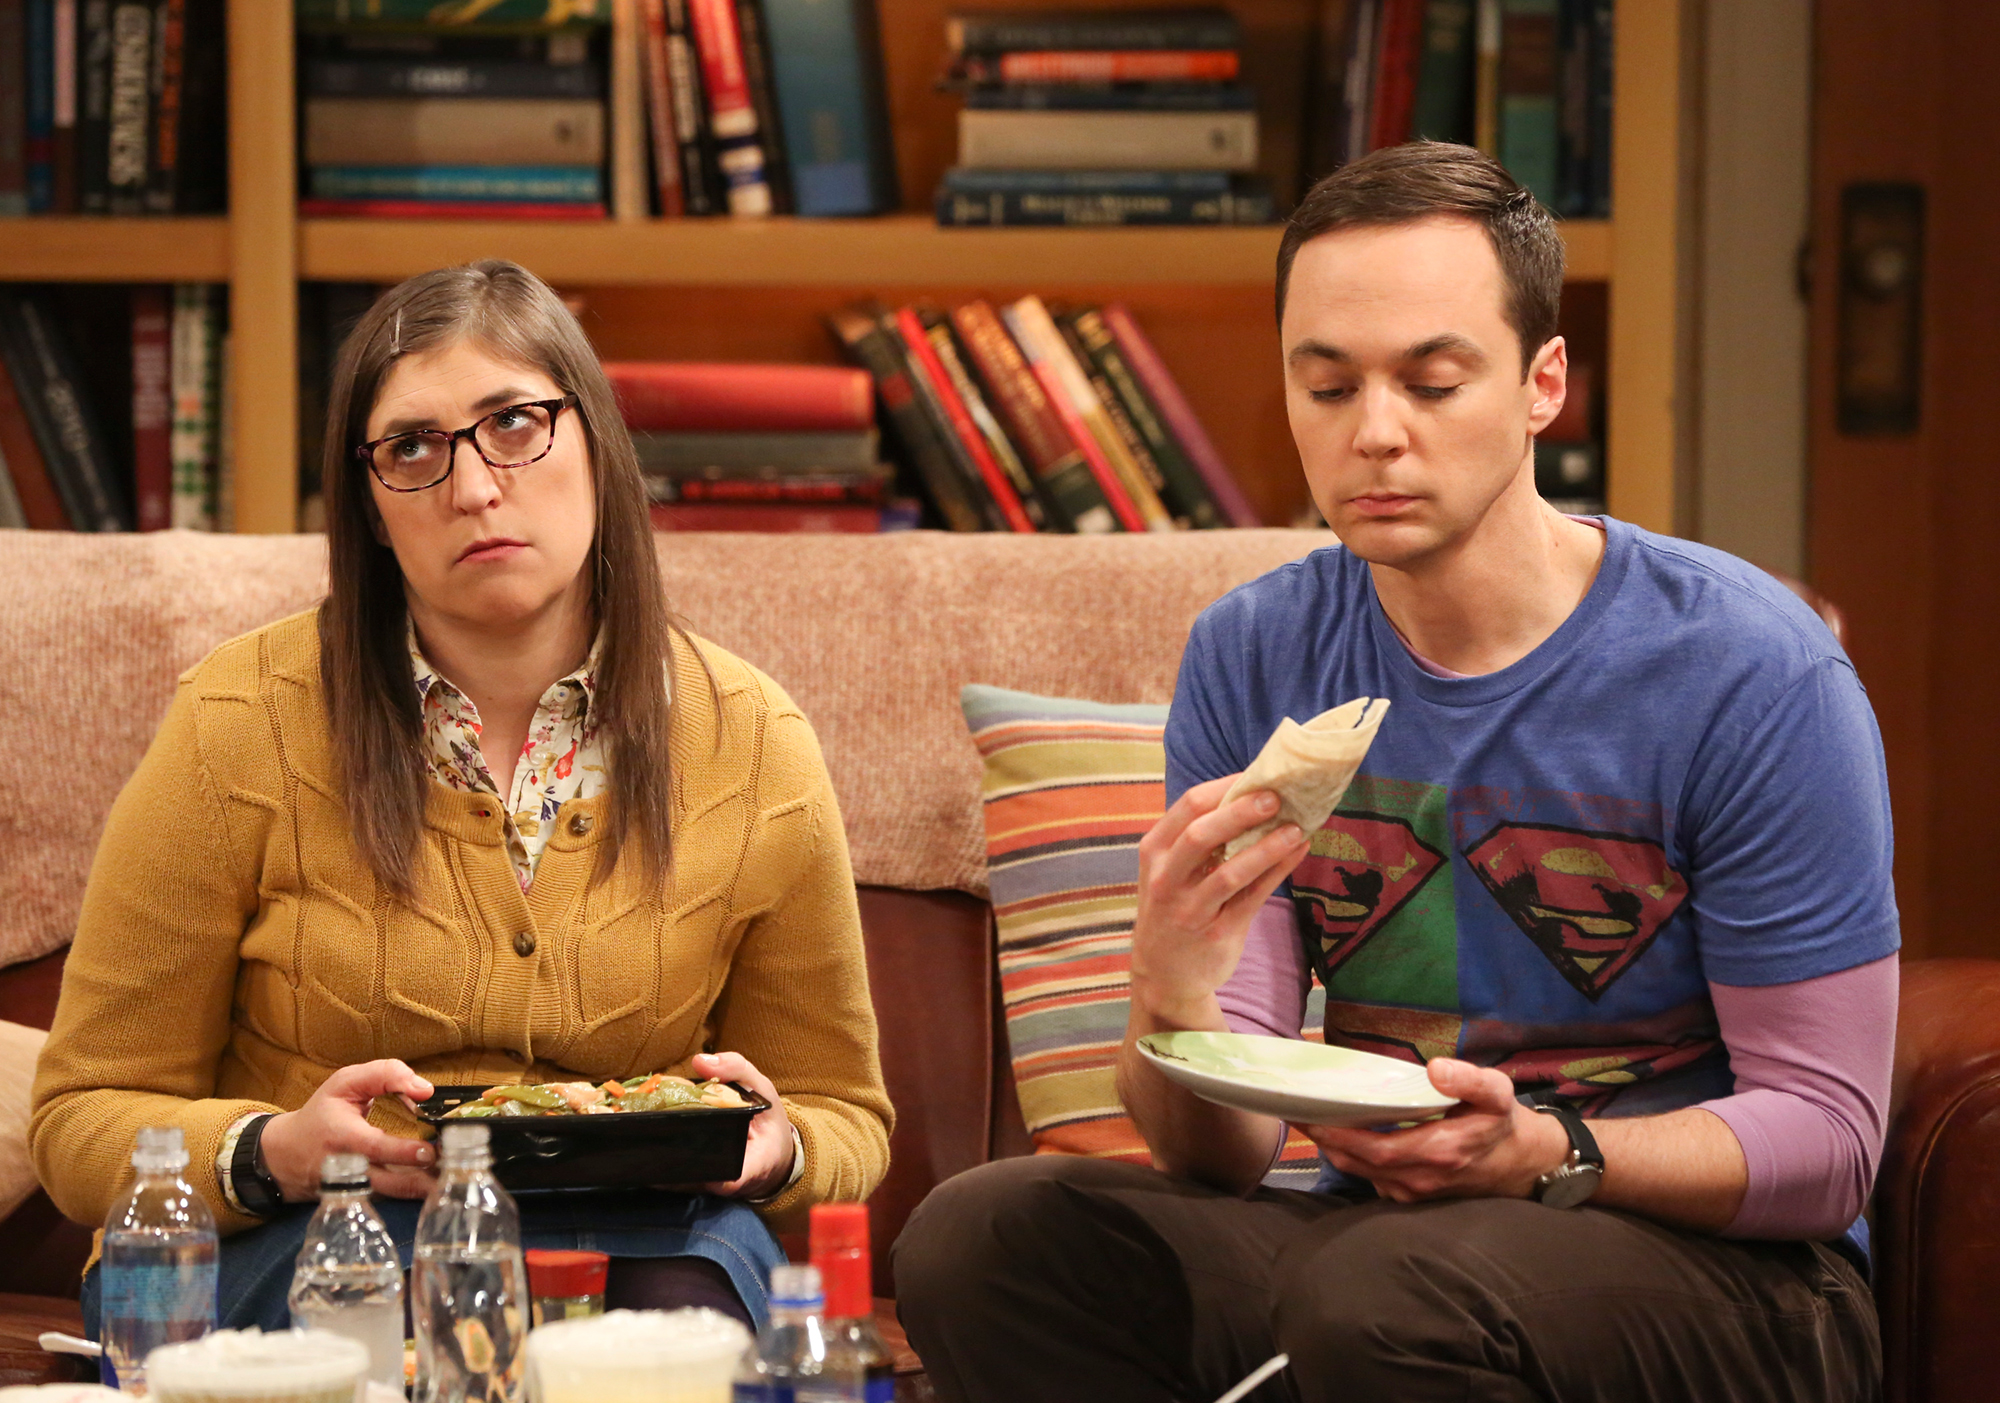 'The Big Bang Theory' Adds Jerry O'Connell as Sheldon's Brother